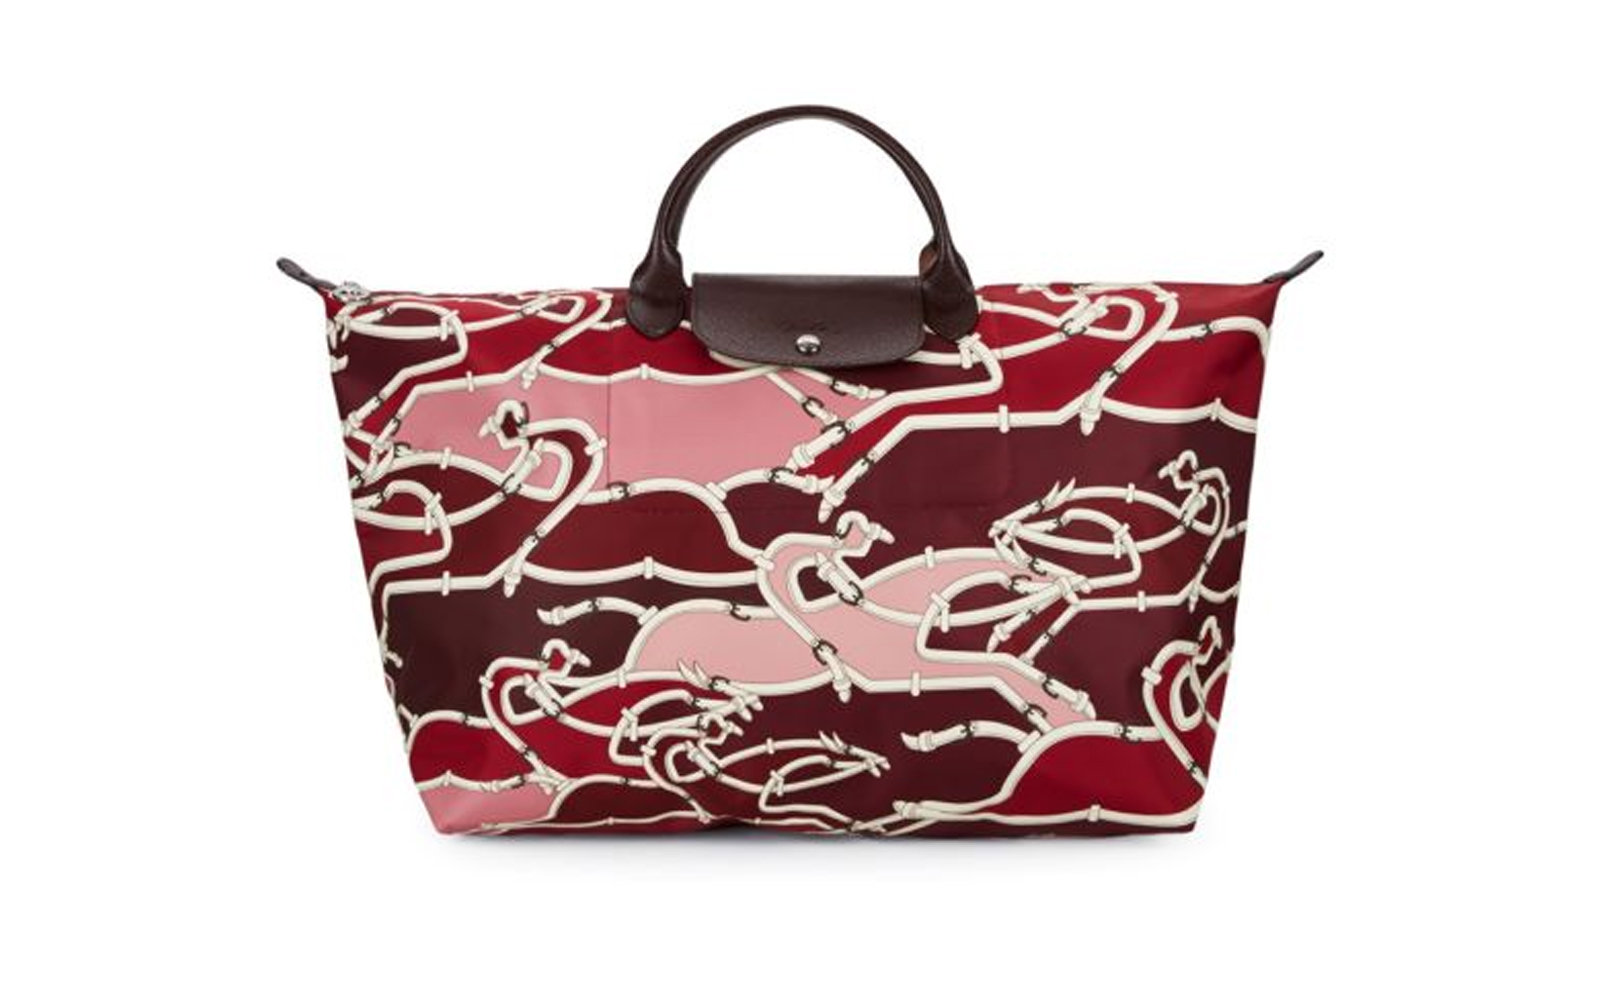 Longchamp Printed Travel Bag in Burgundy